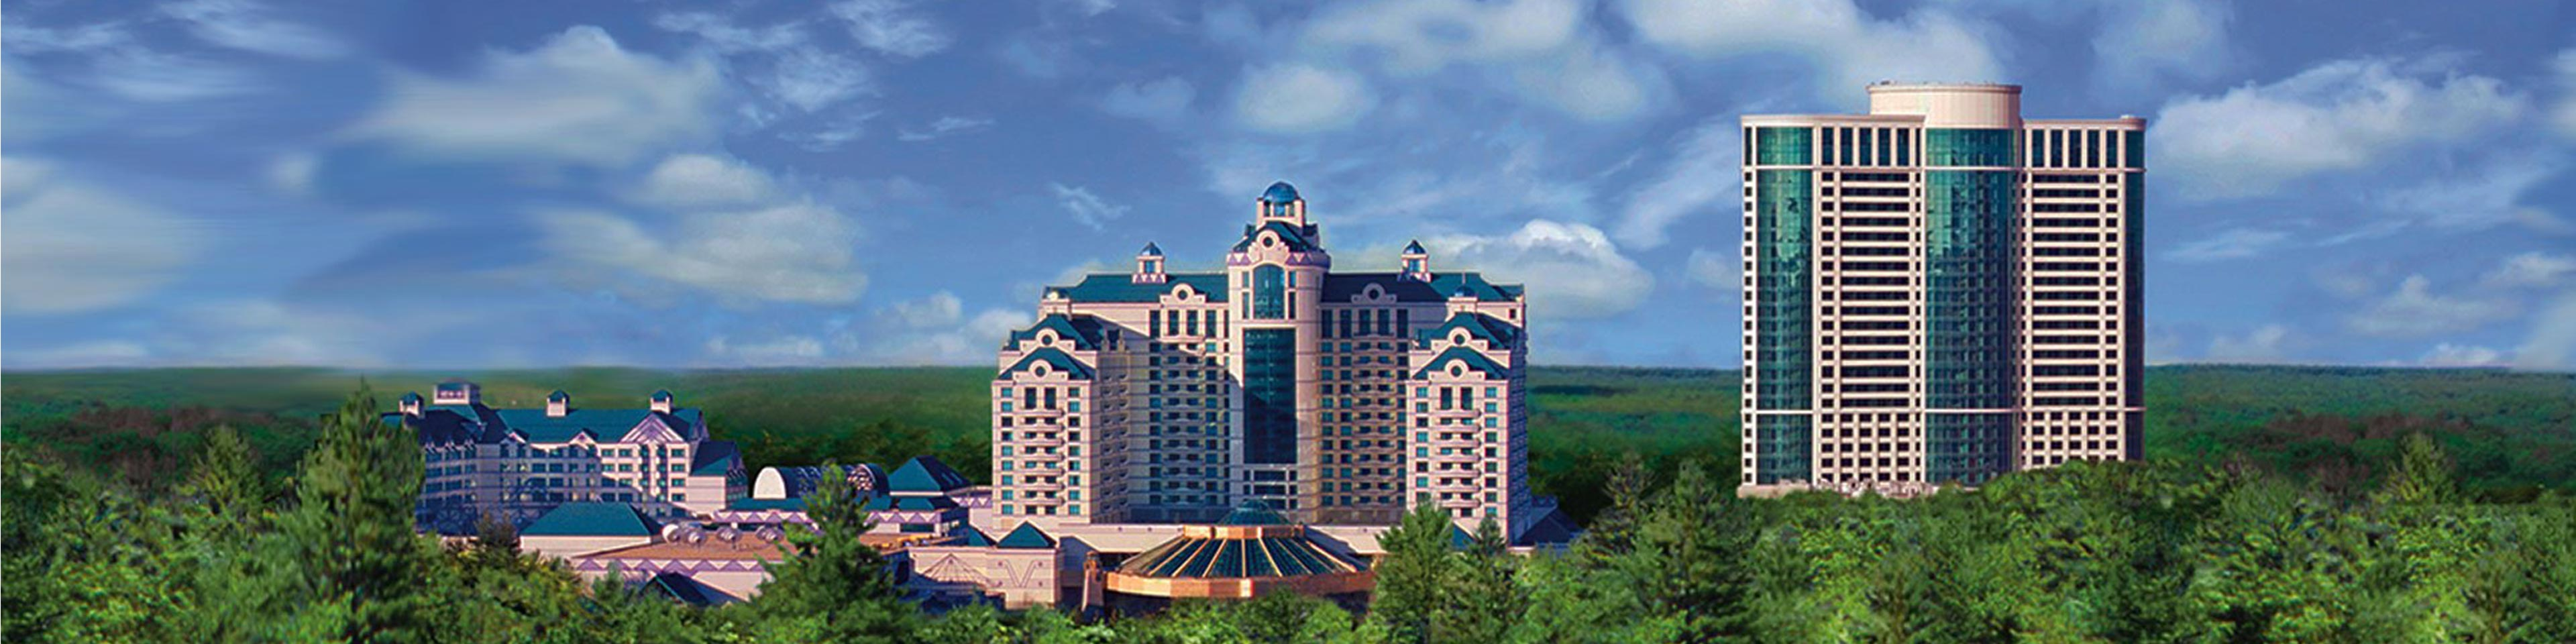 Mashantucket Pequot Tribal Nation